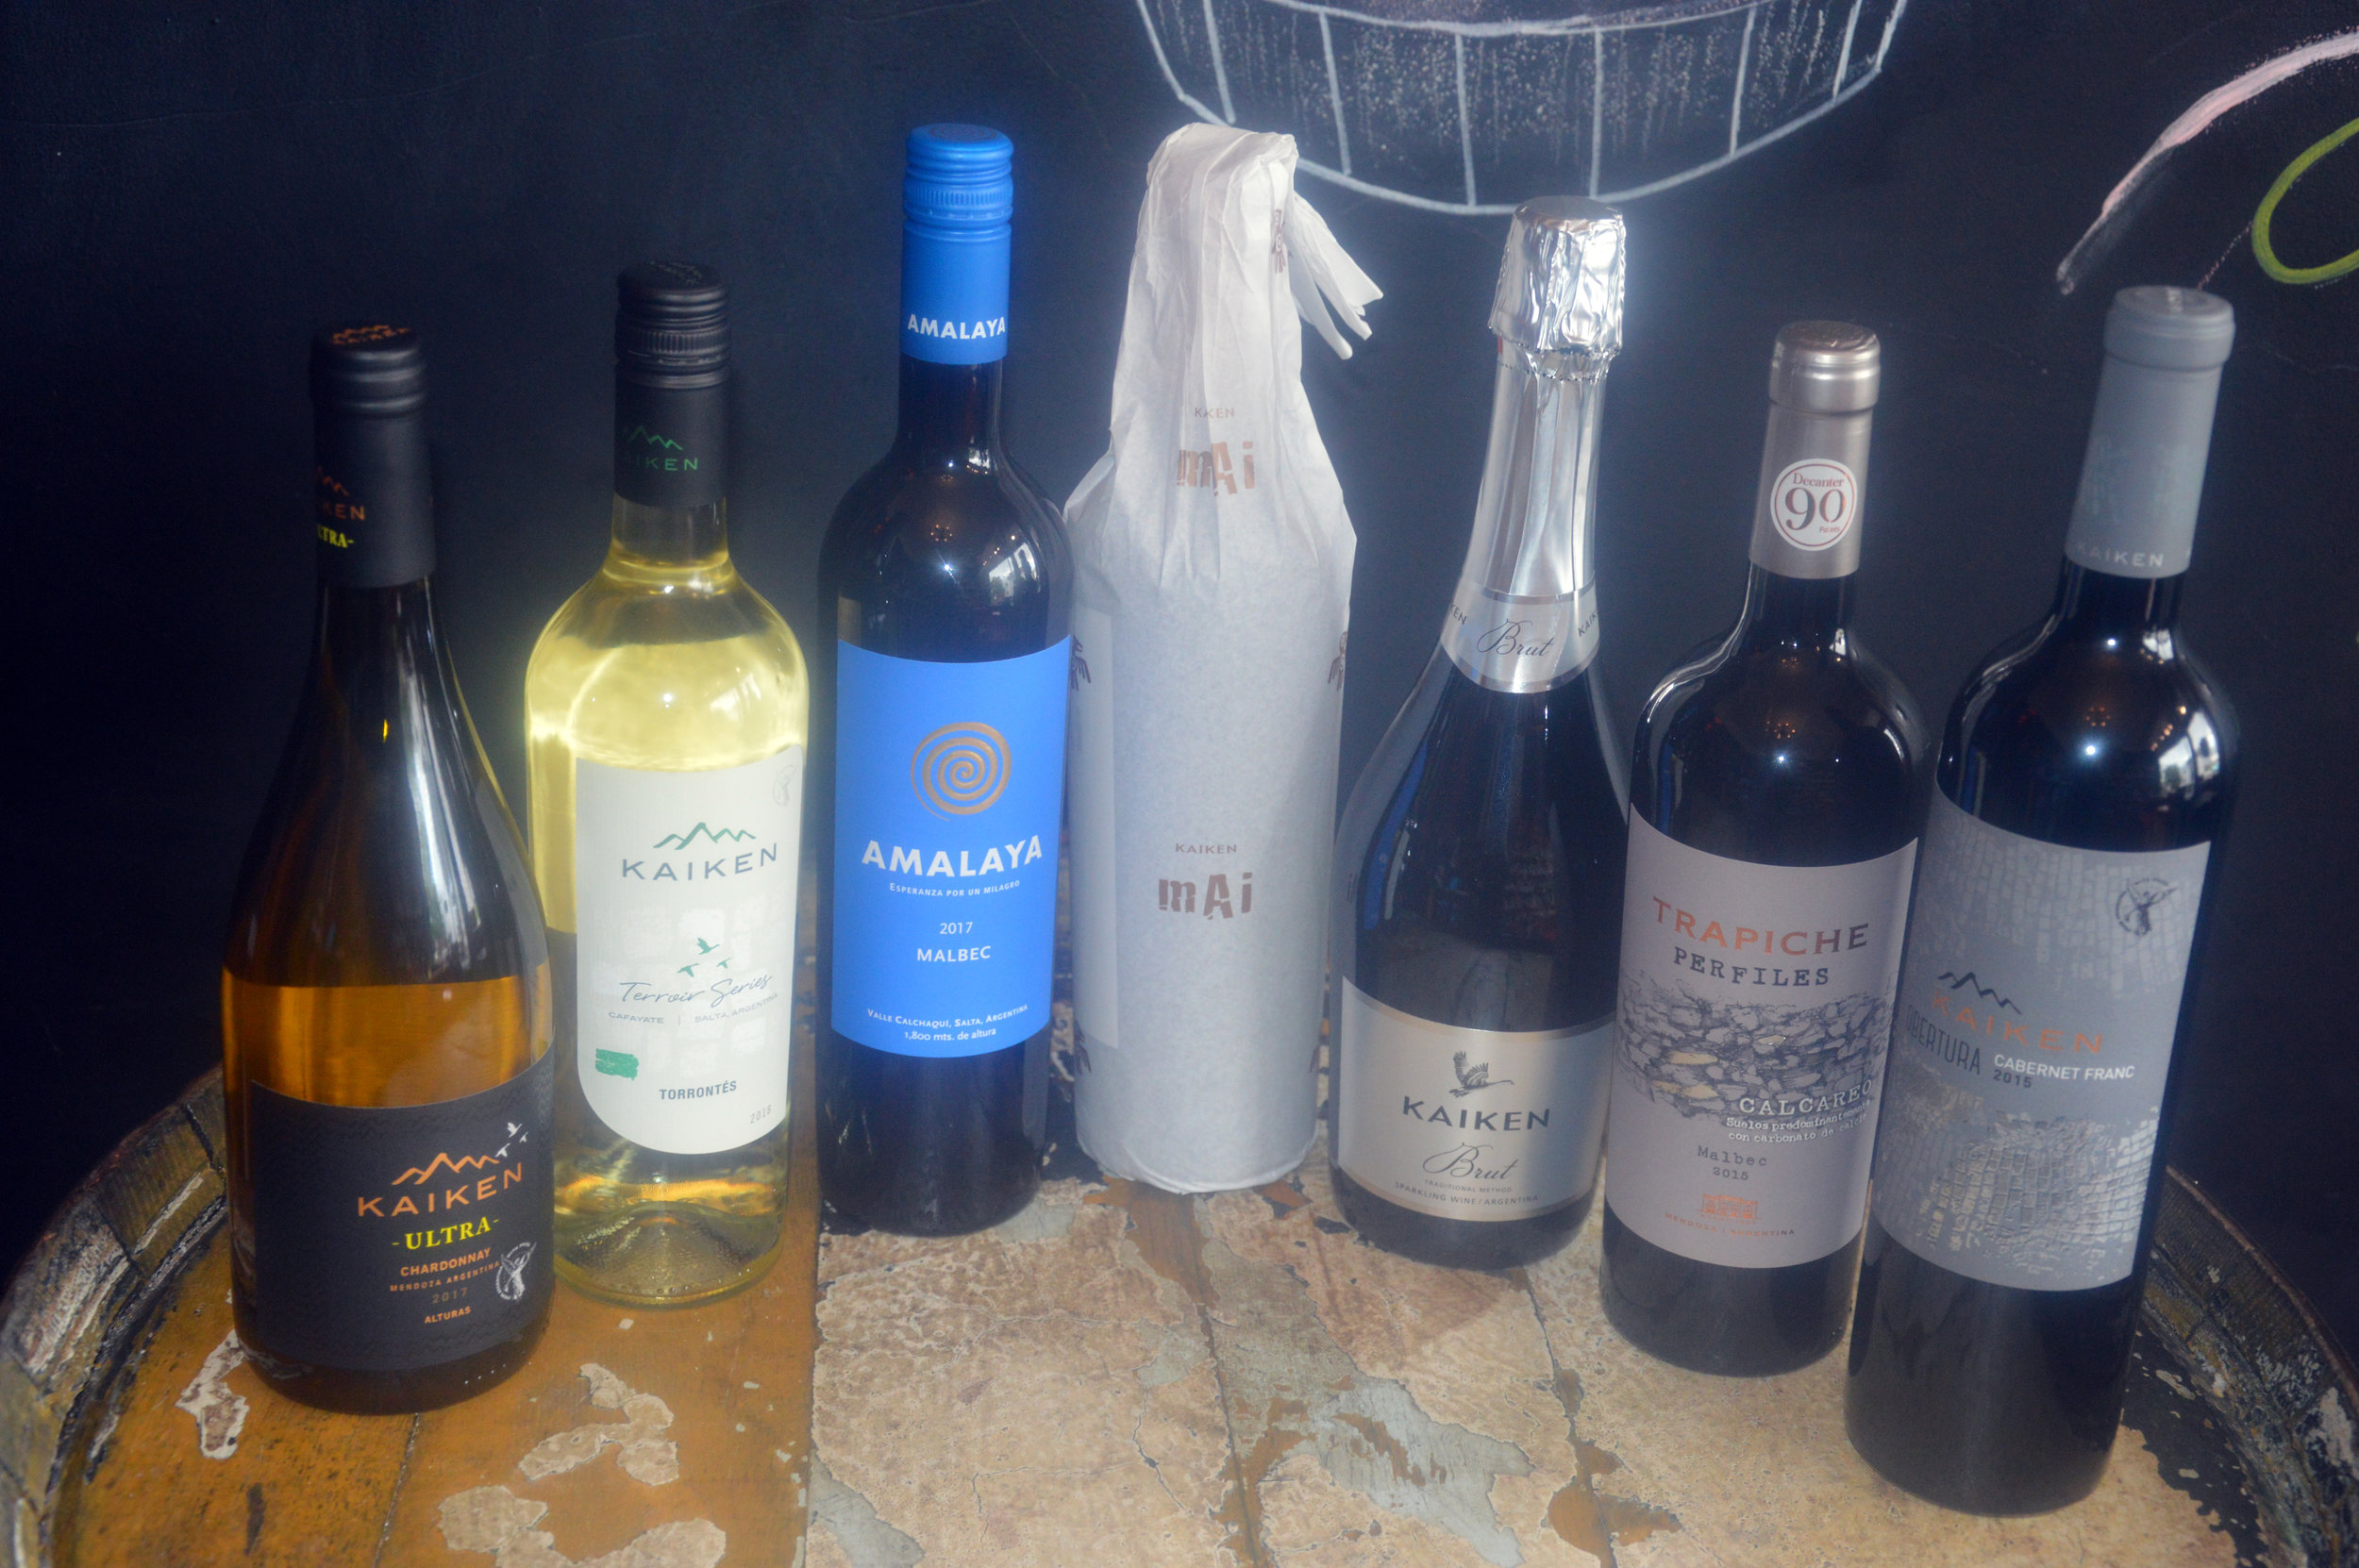 A selection of Argentinian wines in the shop